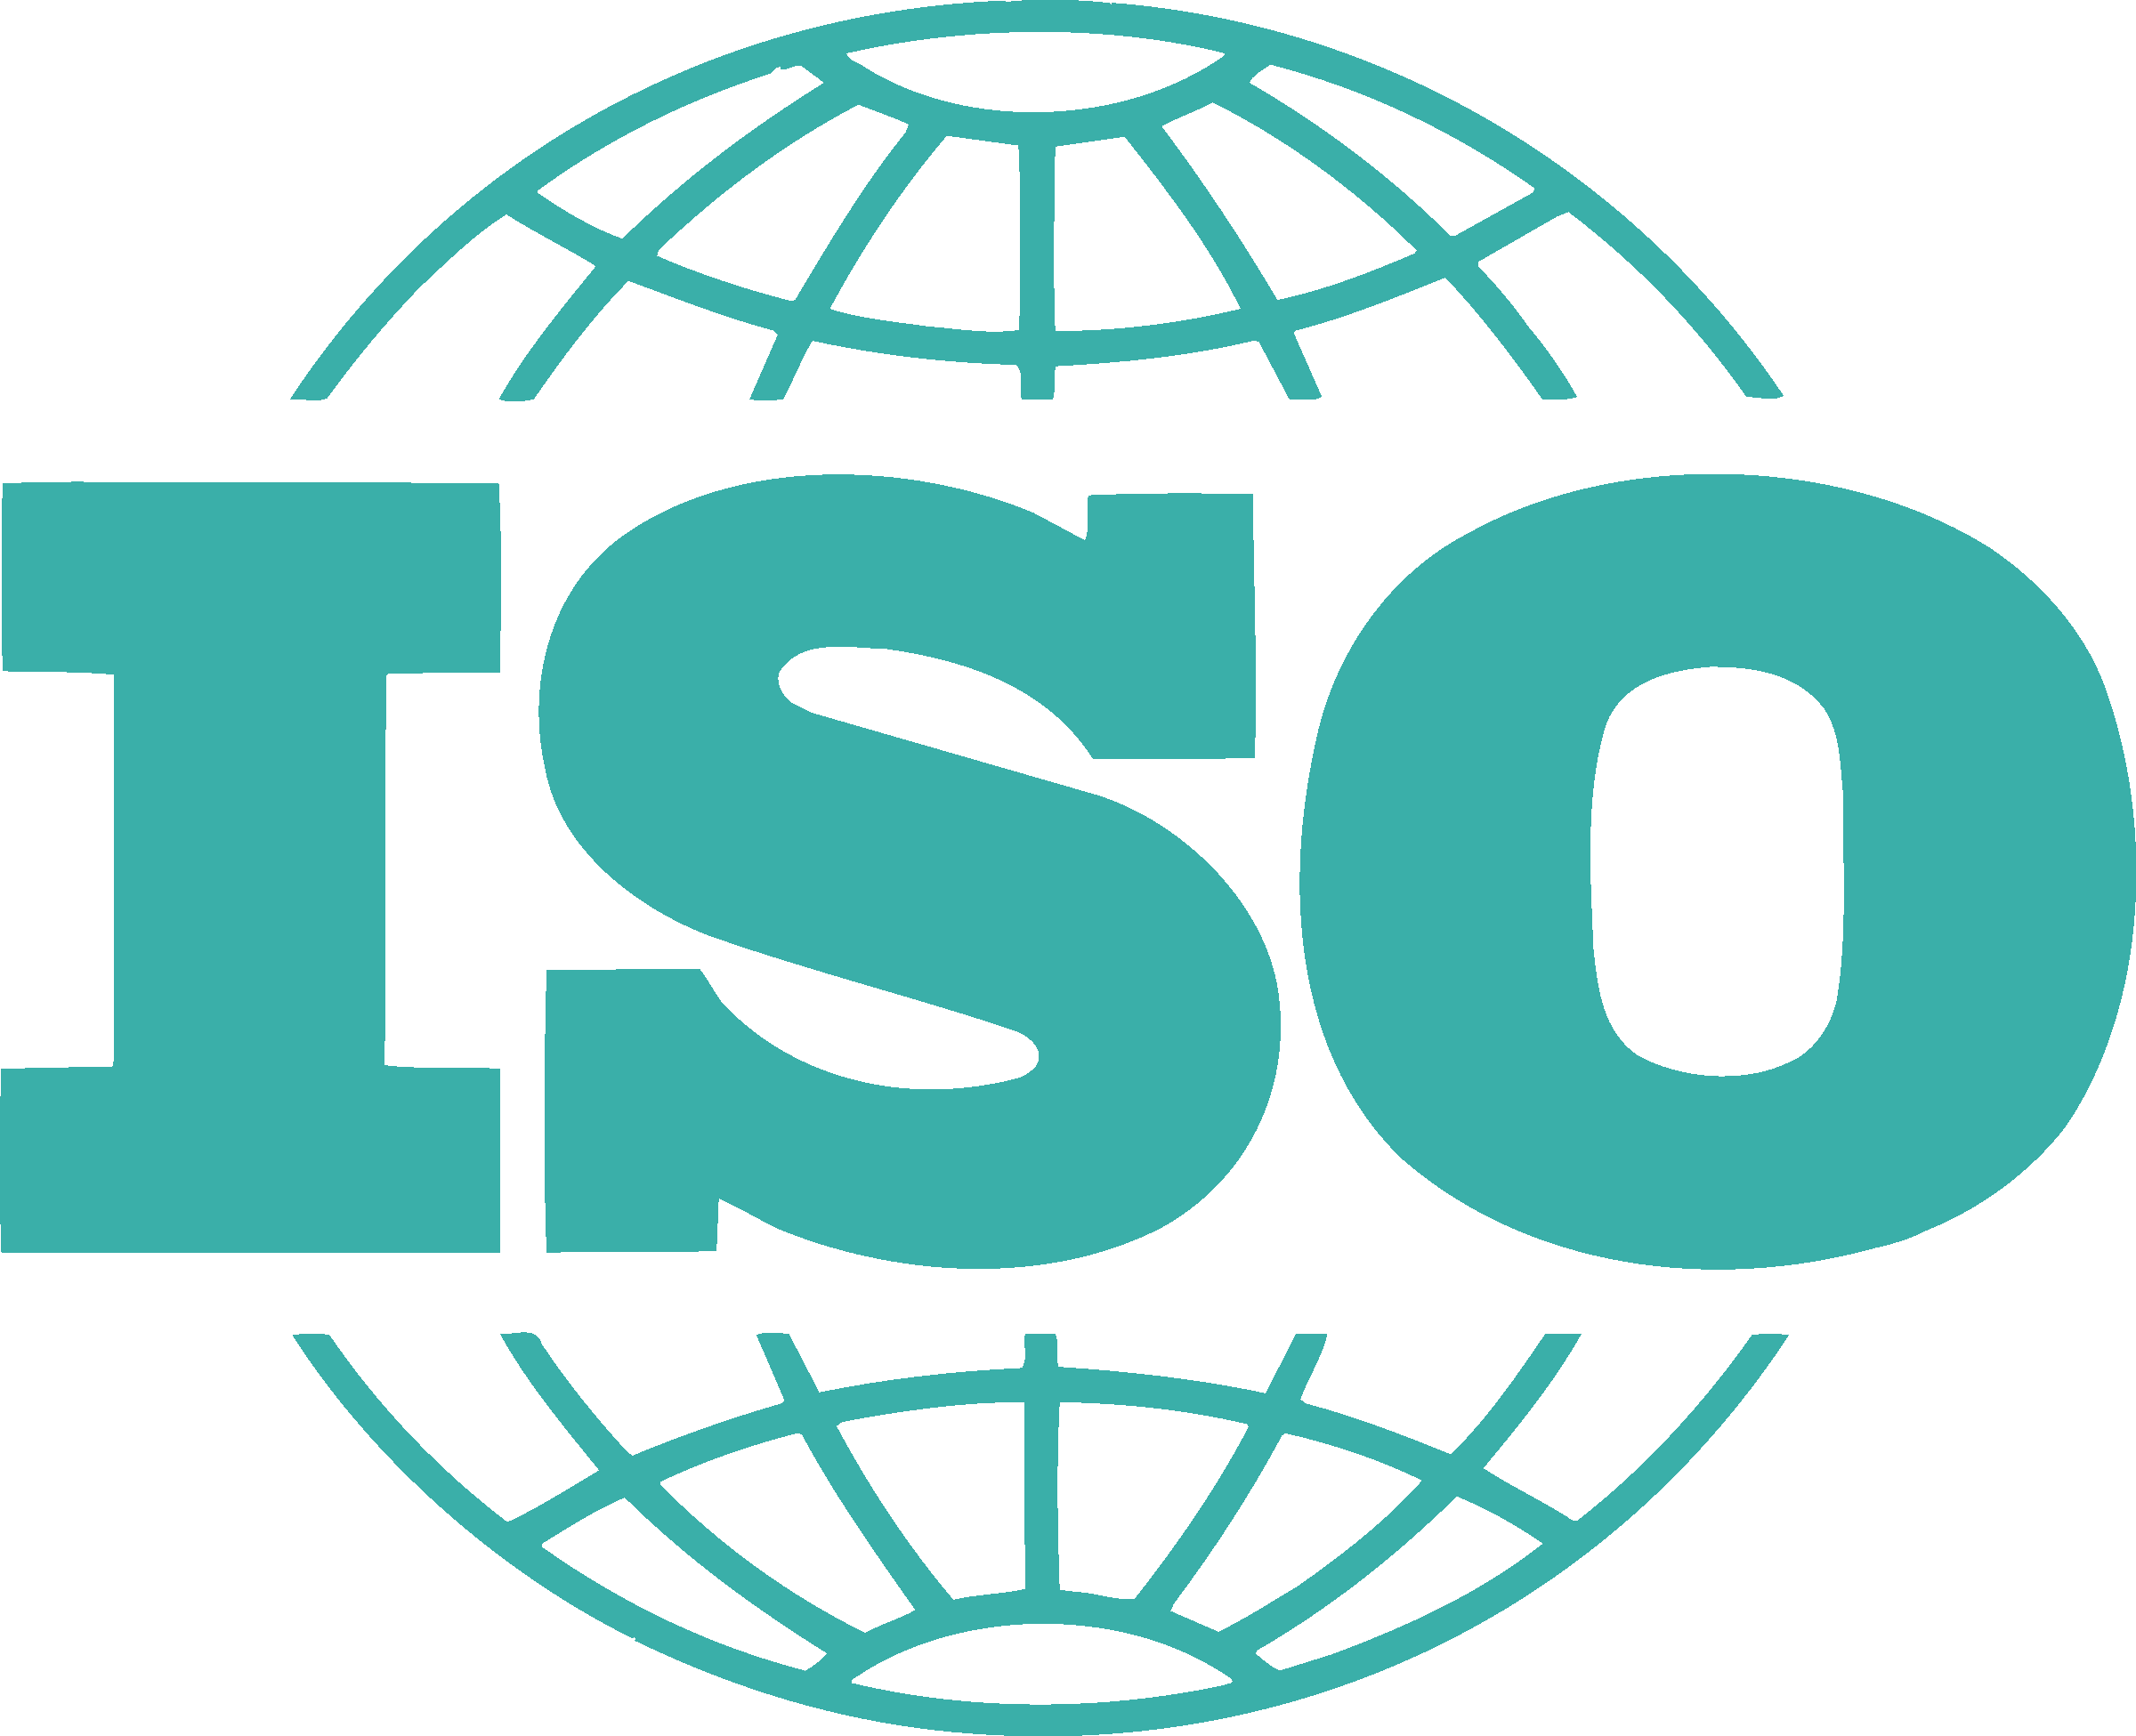 Vas Engineering ISO 9001:2015 logo